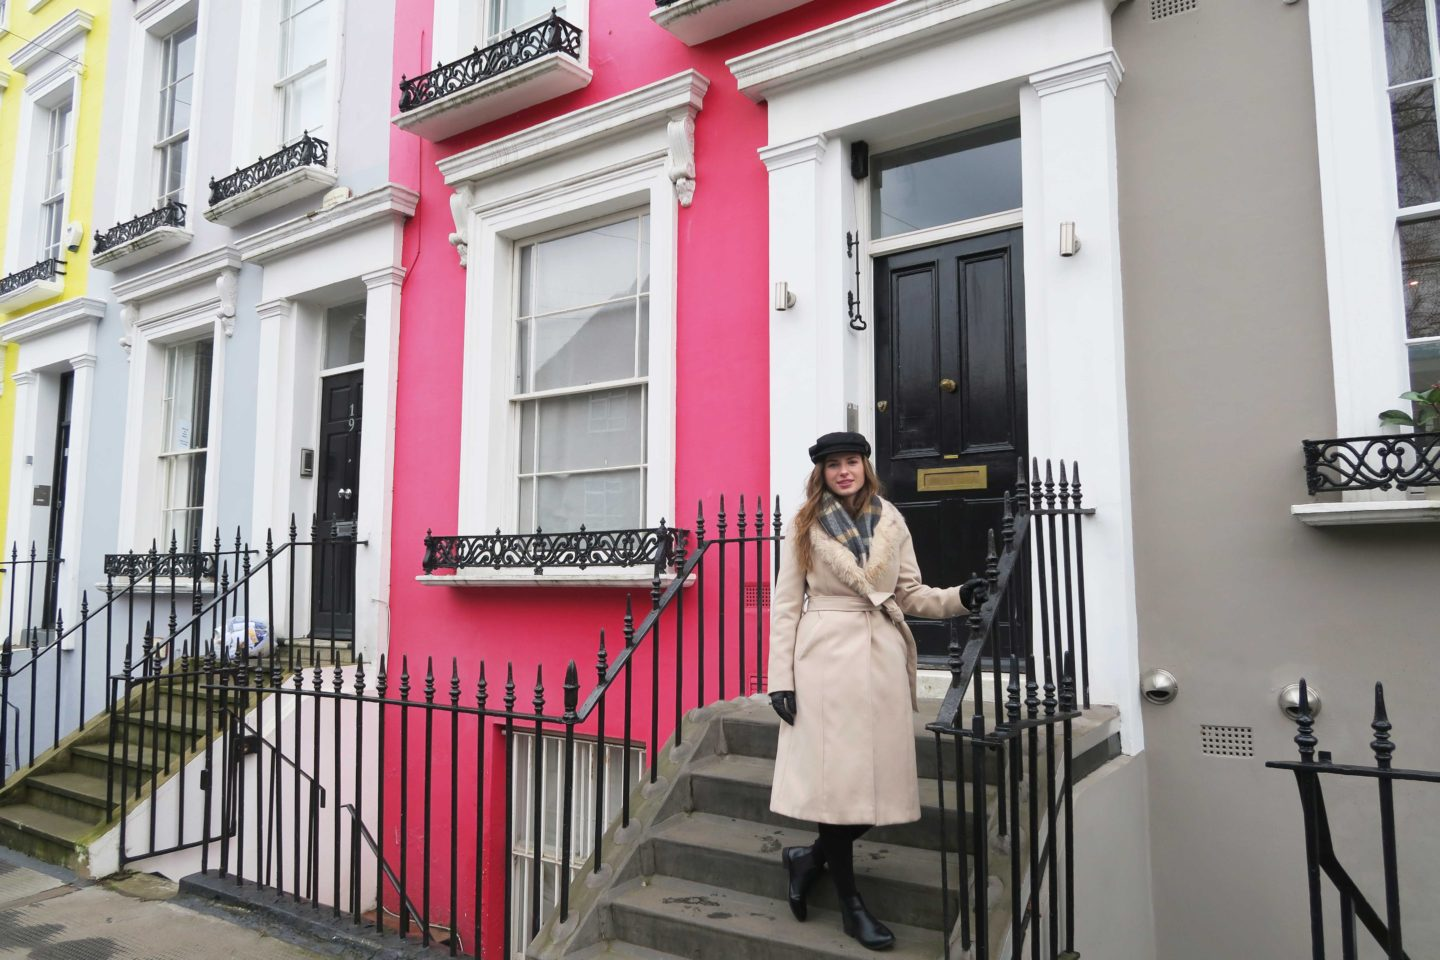 melissa carne standing in front of colourful houses in notting hill in london wearing a baker boy hat